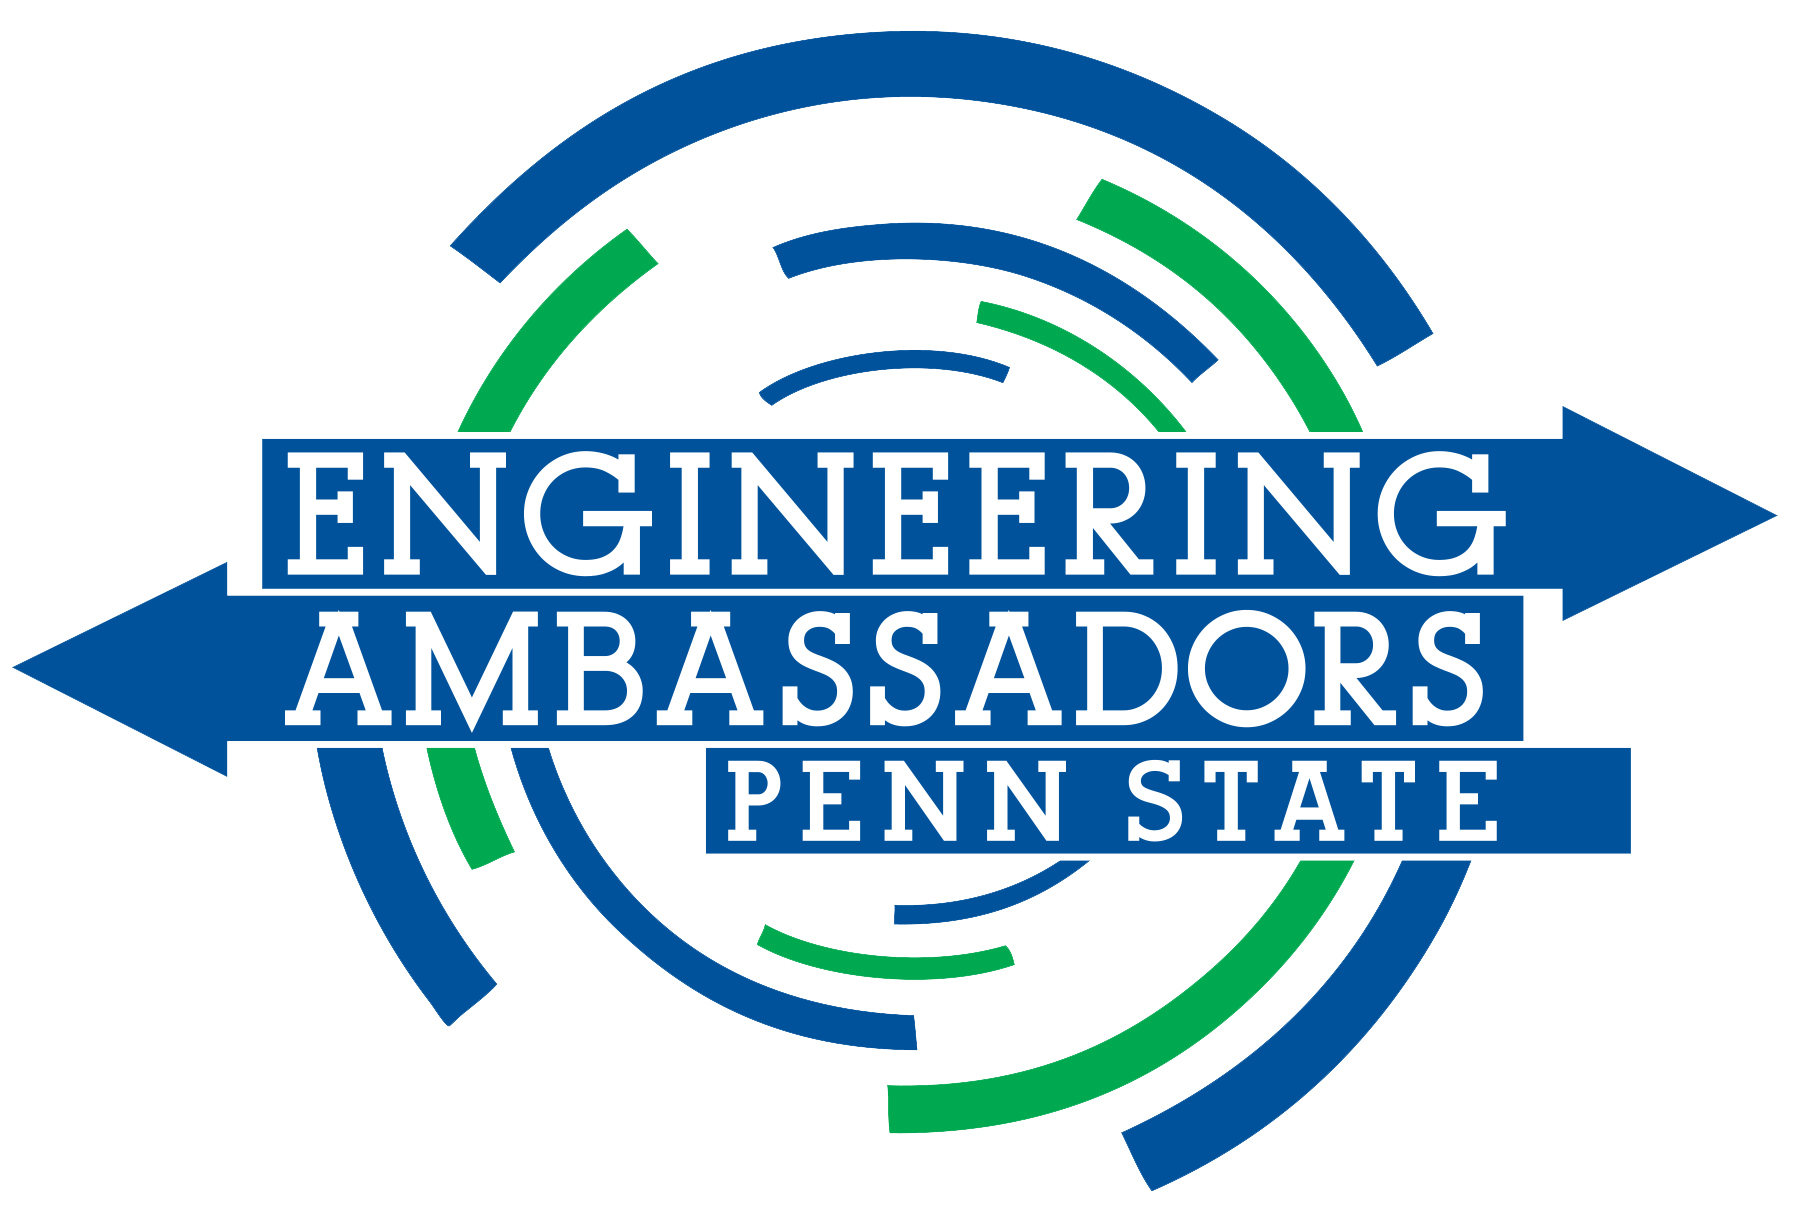 Penn State Engineering Ambassadors